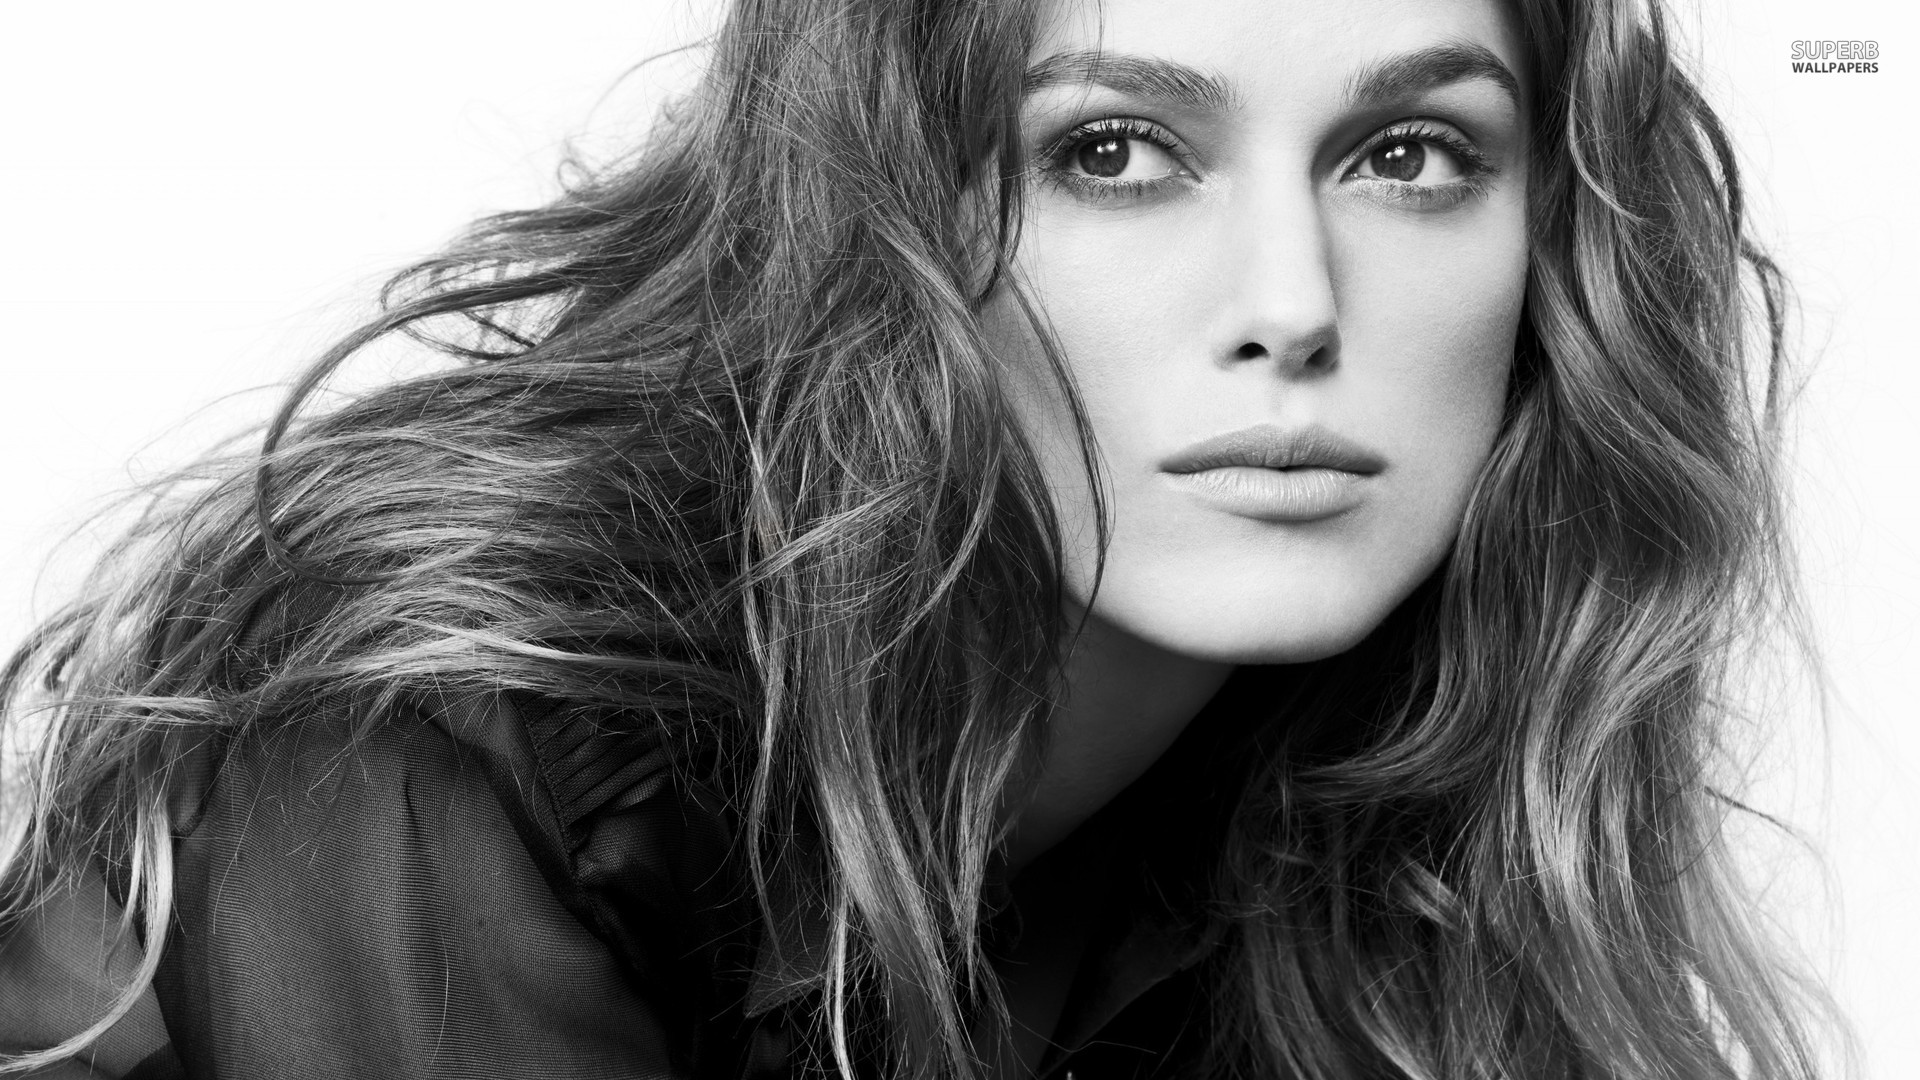 Keira Knightley Wallpapers High Resolution and Quality Download